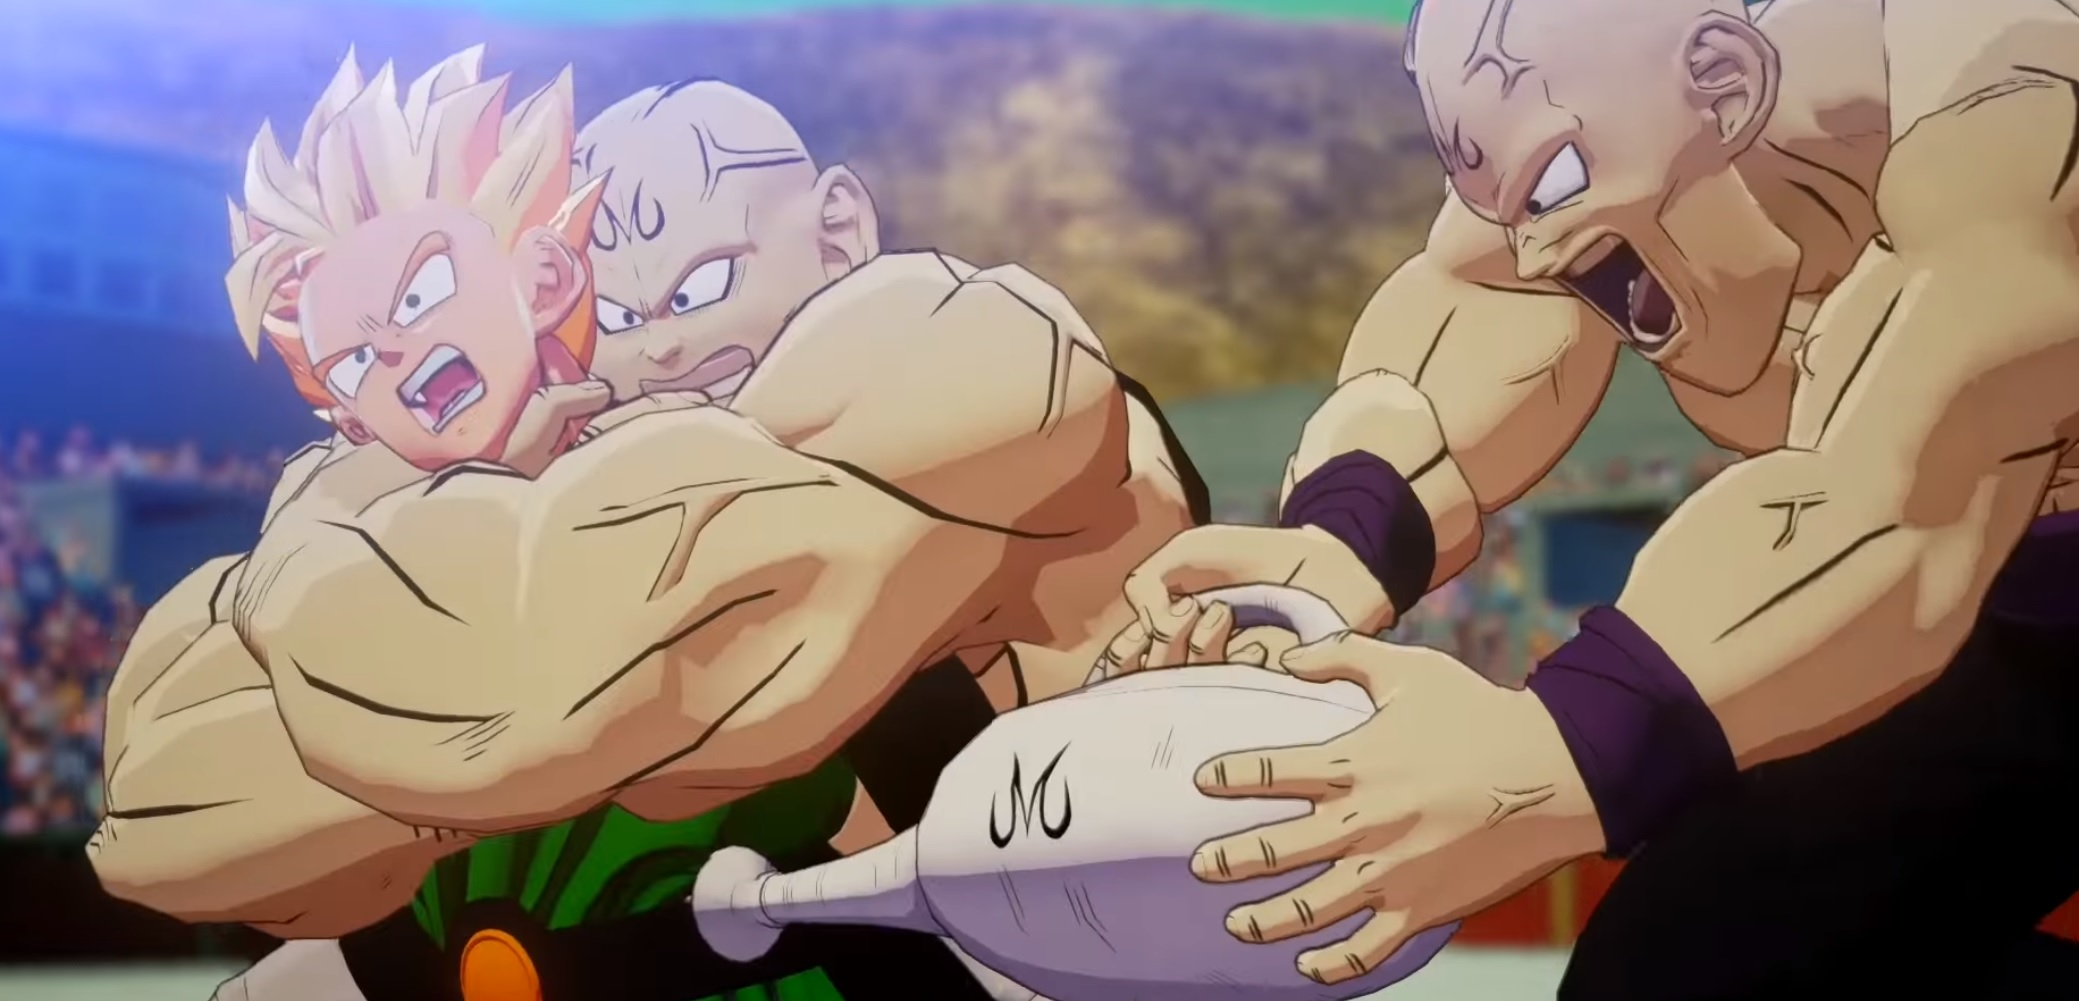 I sincerely hope that Dragon Ball Z: Kakarot is the Asura's Wrath of Dragon Ball games screenshot